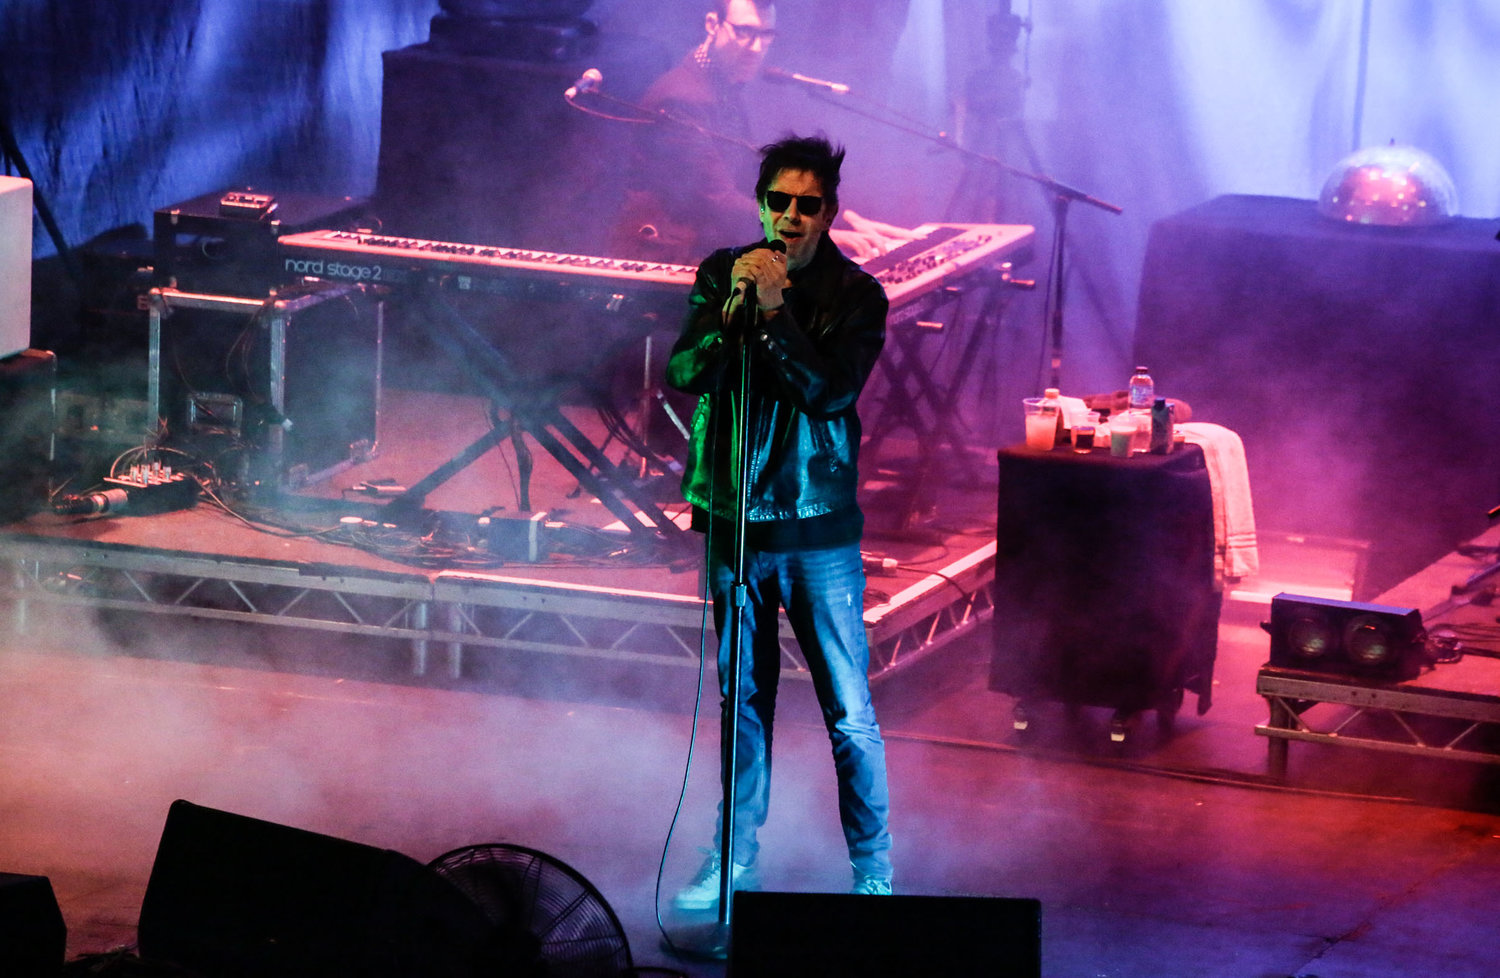 ECHO & THE BUNNYMEN PERFORMING AT YORK'S BARBICAN CENTRE - 22.10.2018  PICTURE BY: LAURA TOOMER @TOOMERGIGPHOTOGRAPHY